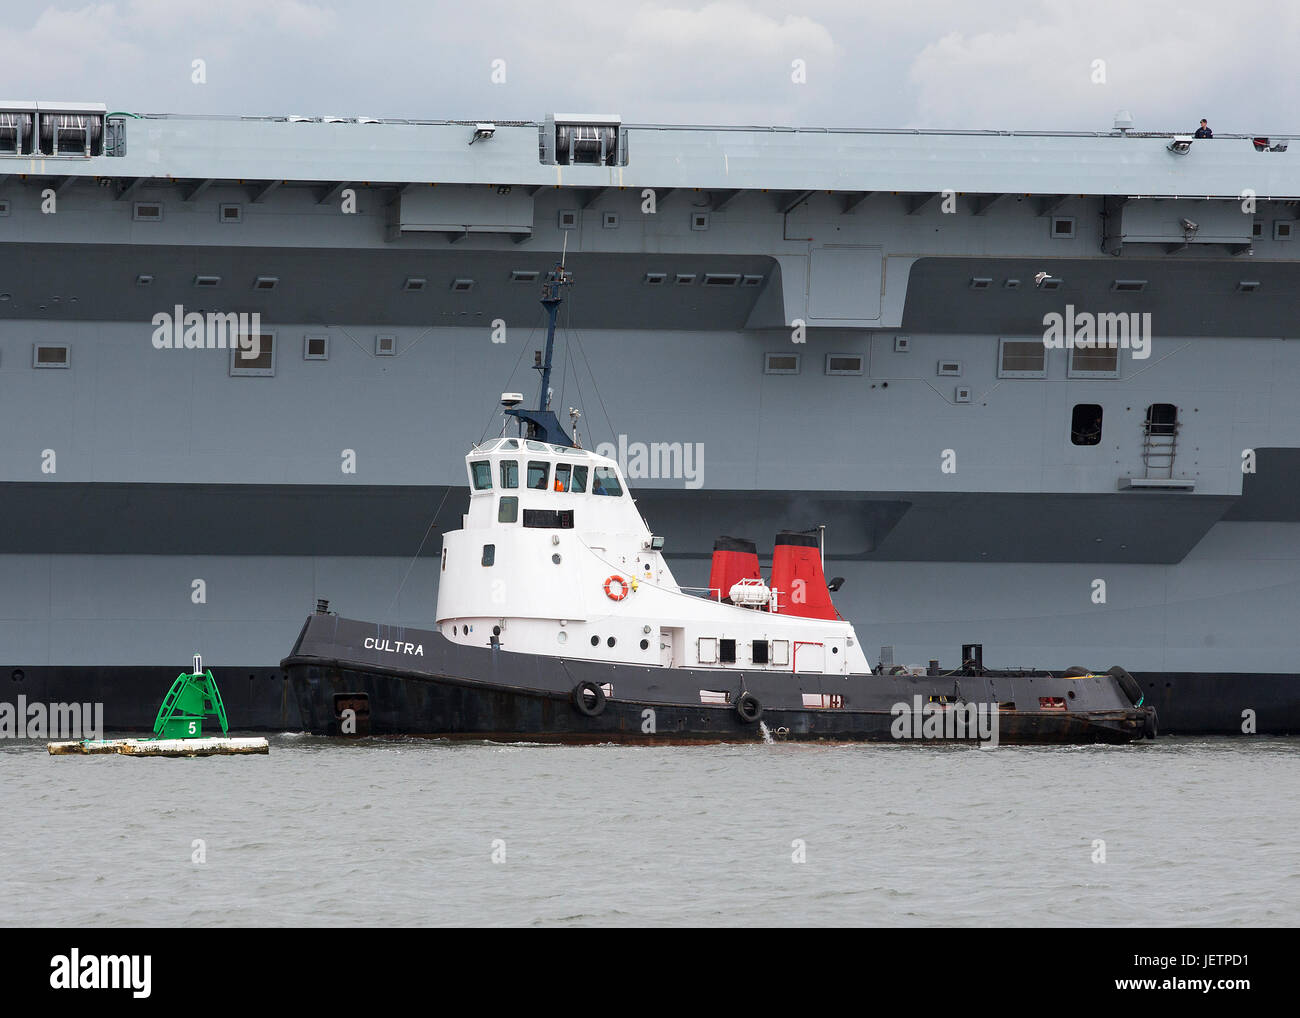 Tugboats on the Firth of Forth towing the HMS Queen Elizabeth Aircraft carrier on the Firth of Forth Stock Photo